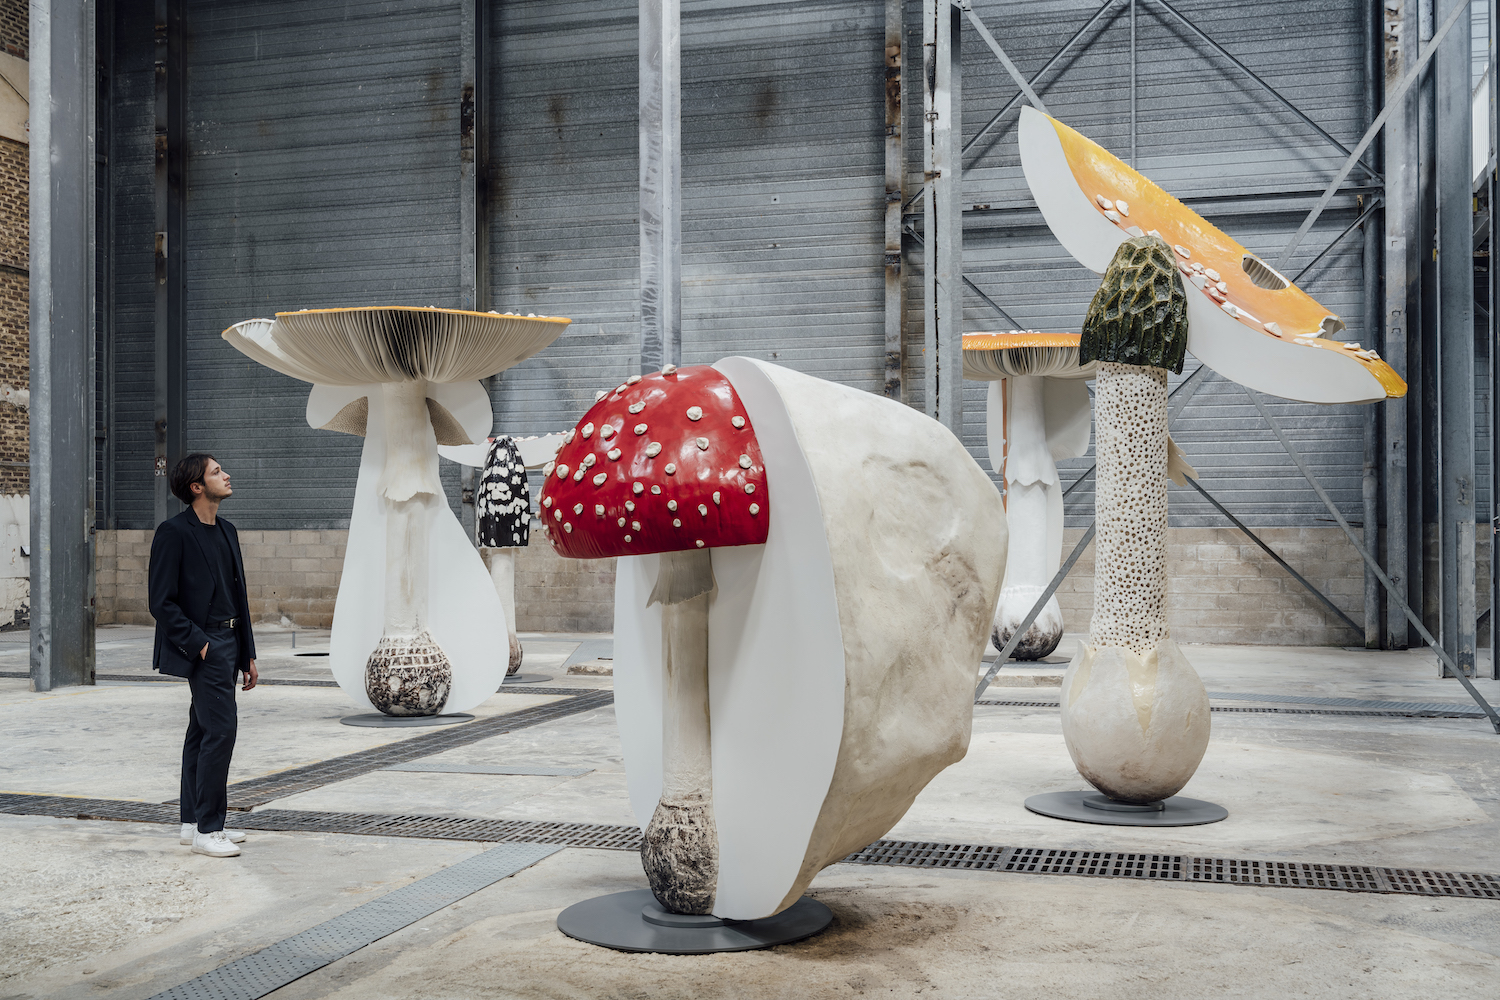 gallery view at gallery continua in les moulins of giant cartoonish mushrooms